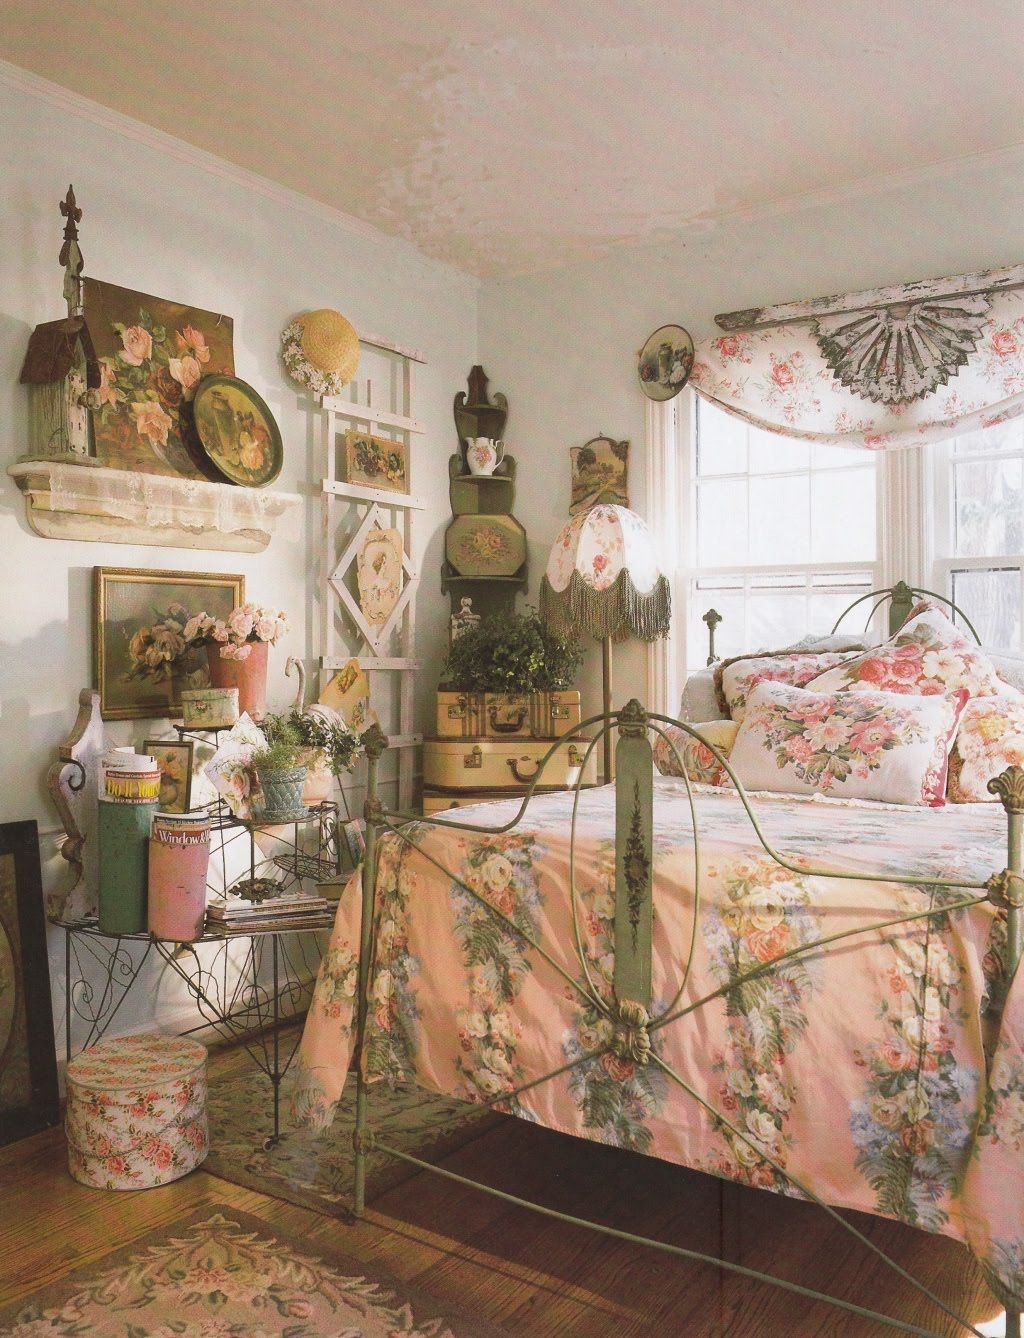 Interior Vintage Style Bedroom Ideas modern interior design with vintage furniture and decor room